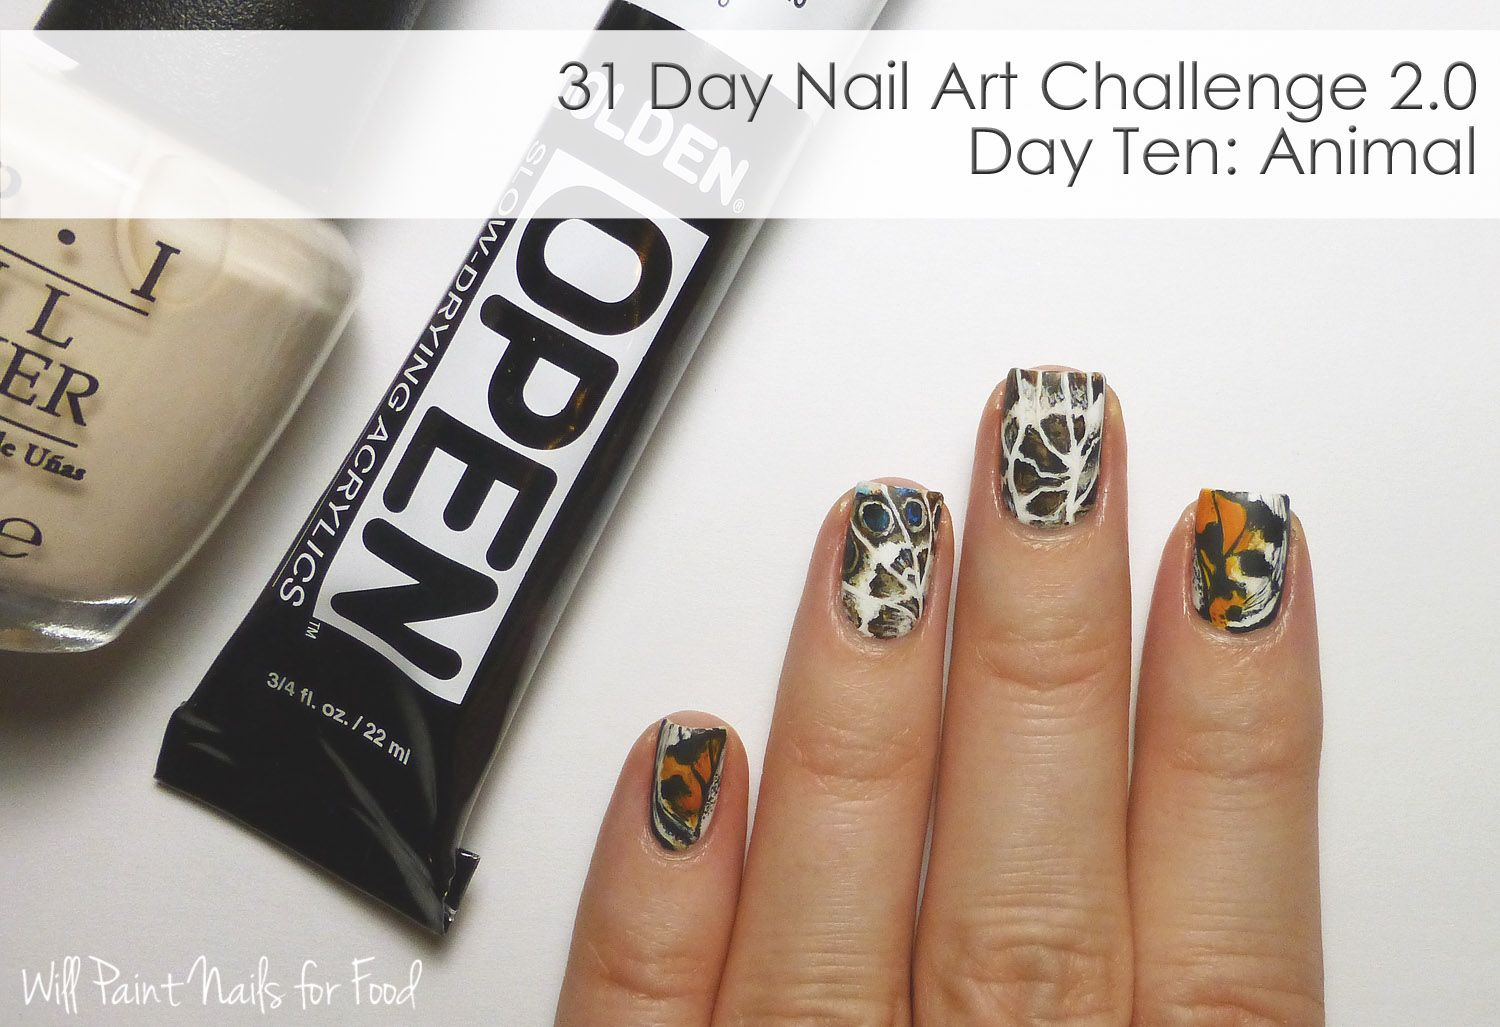 Hi everyone! Im very behind on the 31 Day Nail Art Challenge 2.0 that Im doing with The Nail...